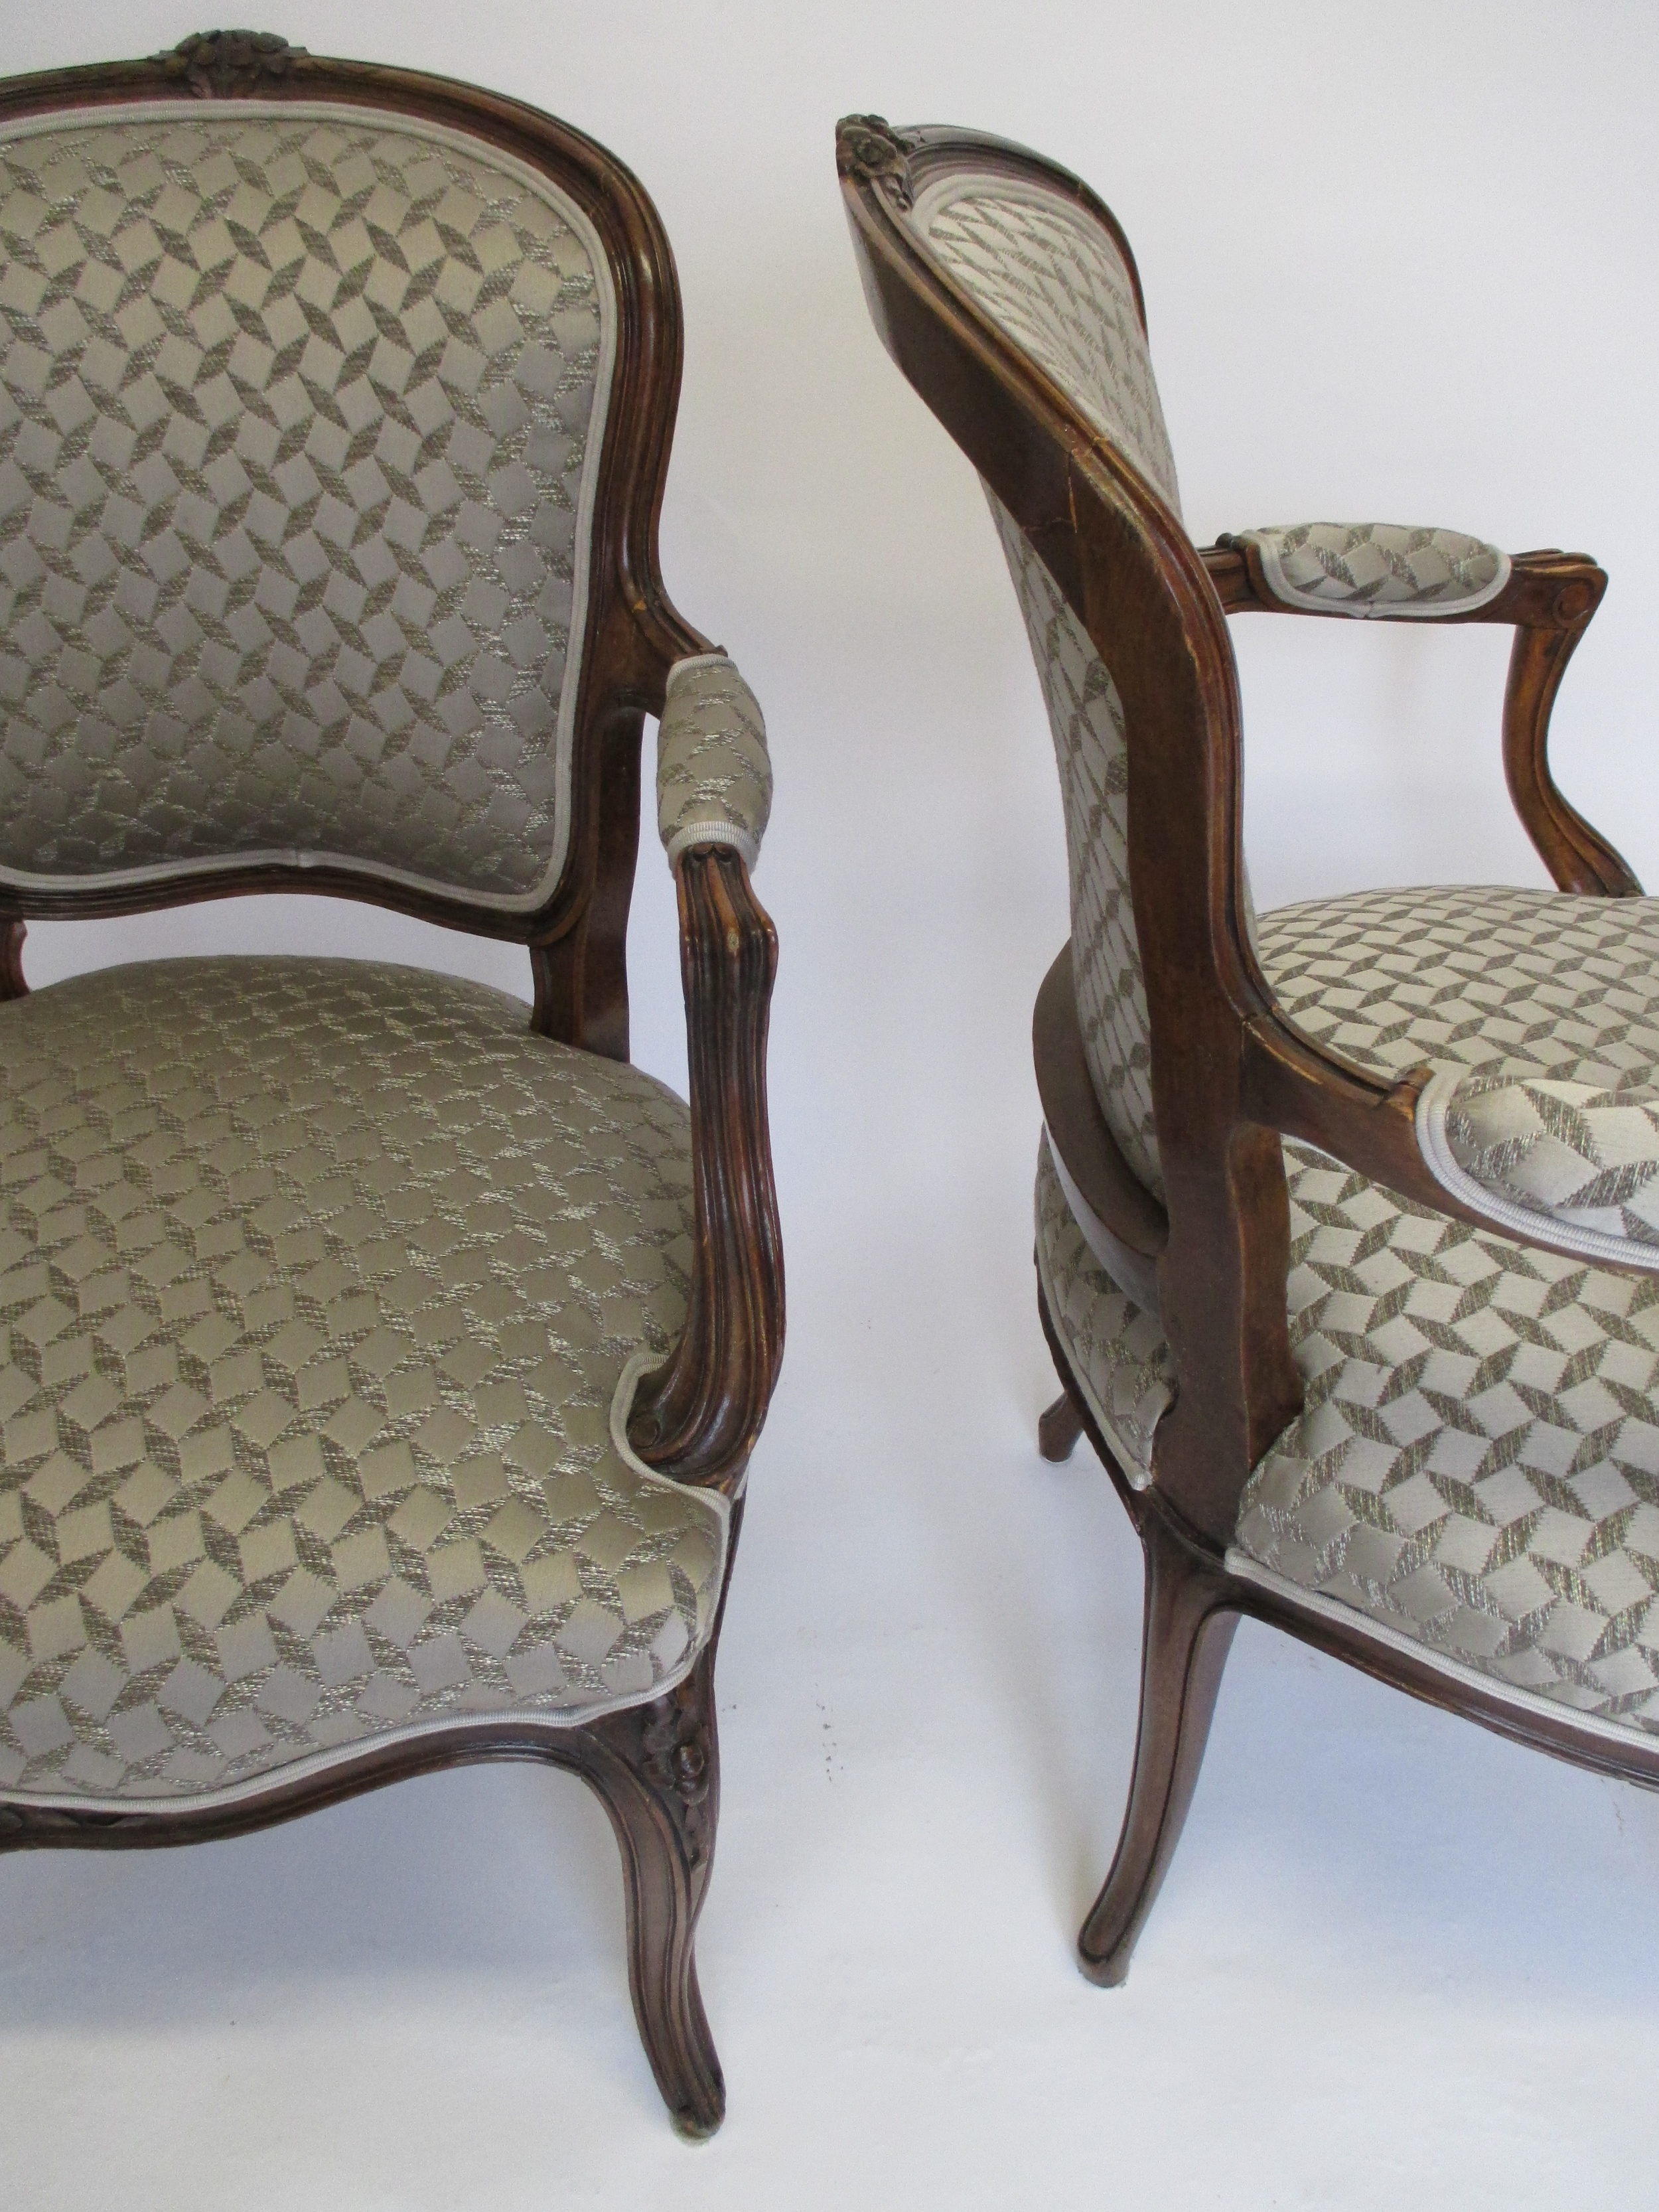 A pair of Louis style chairs in Goldwyn by Romo.